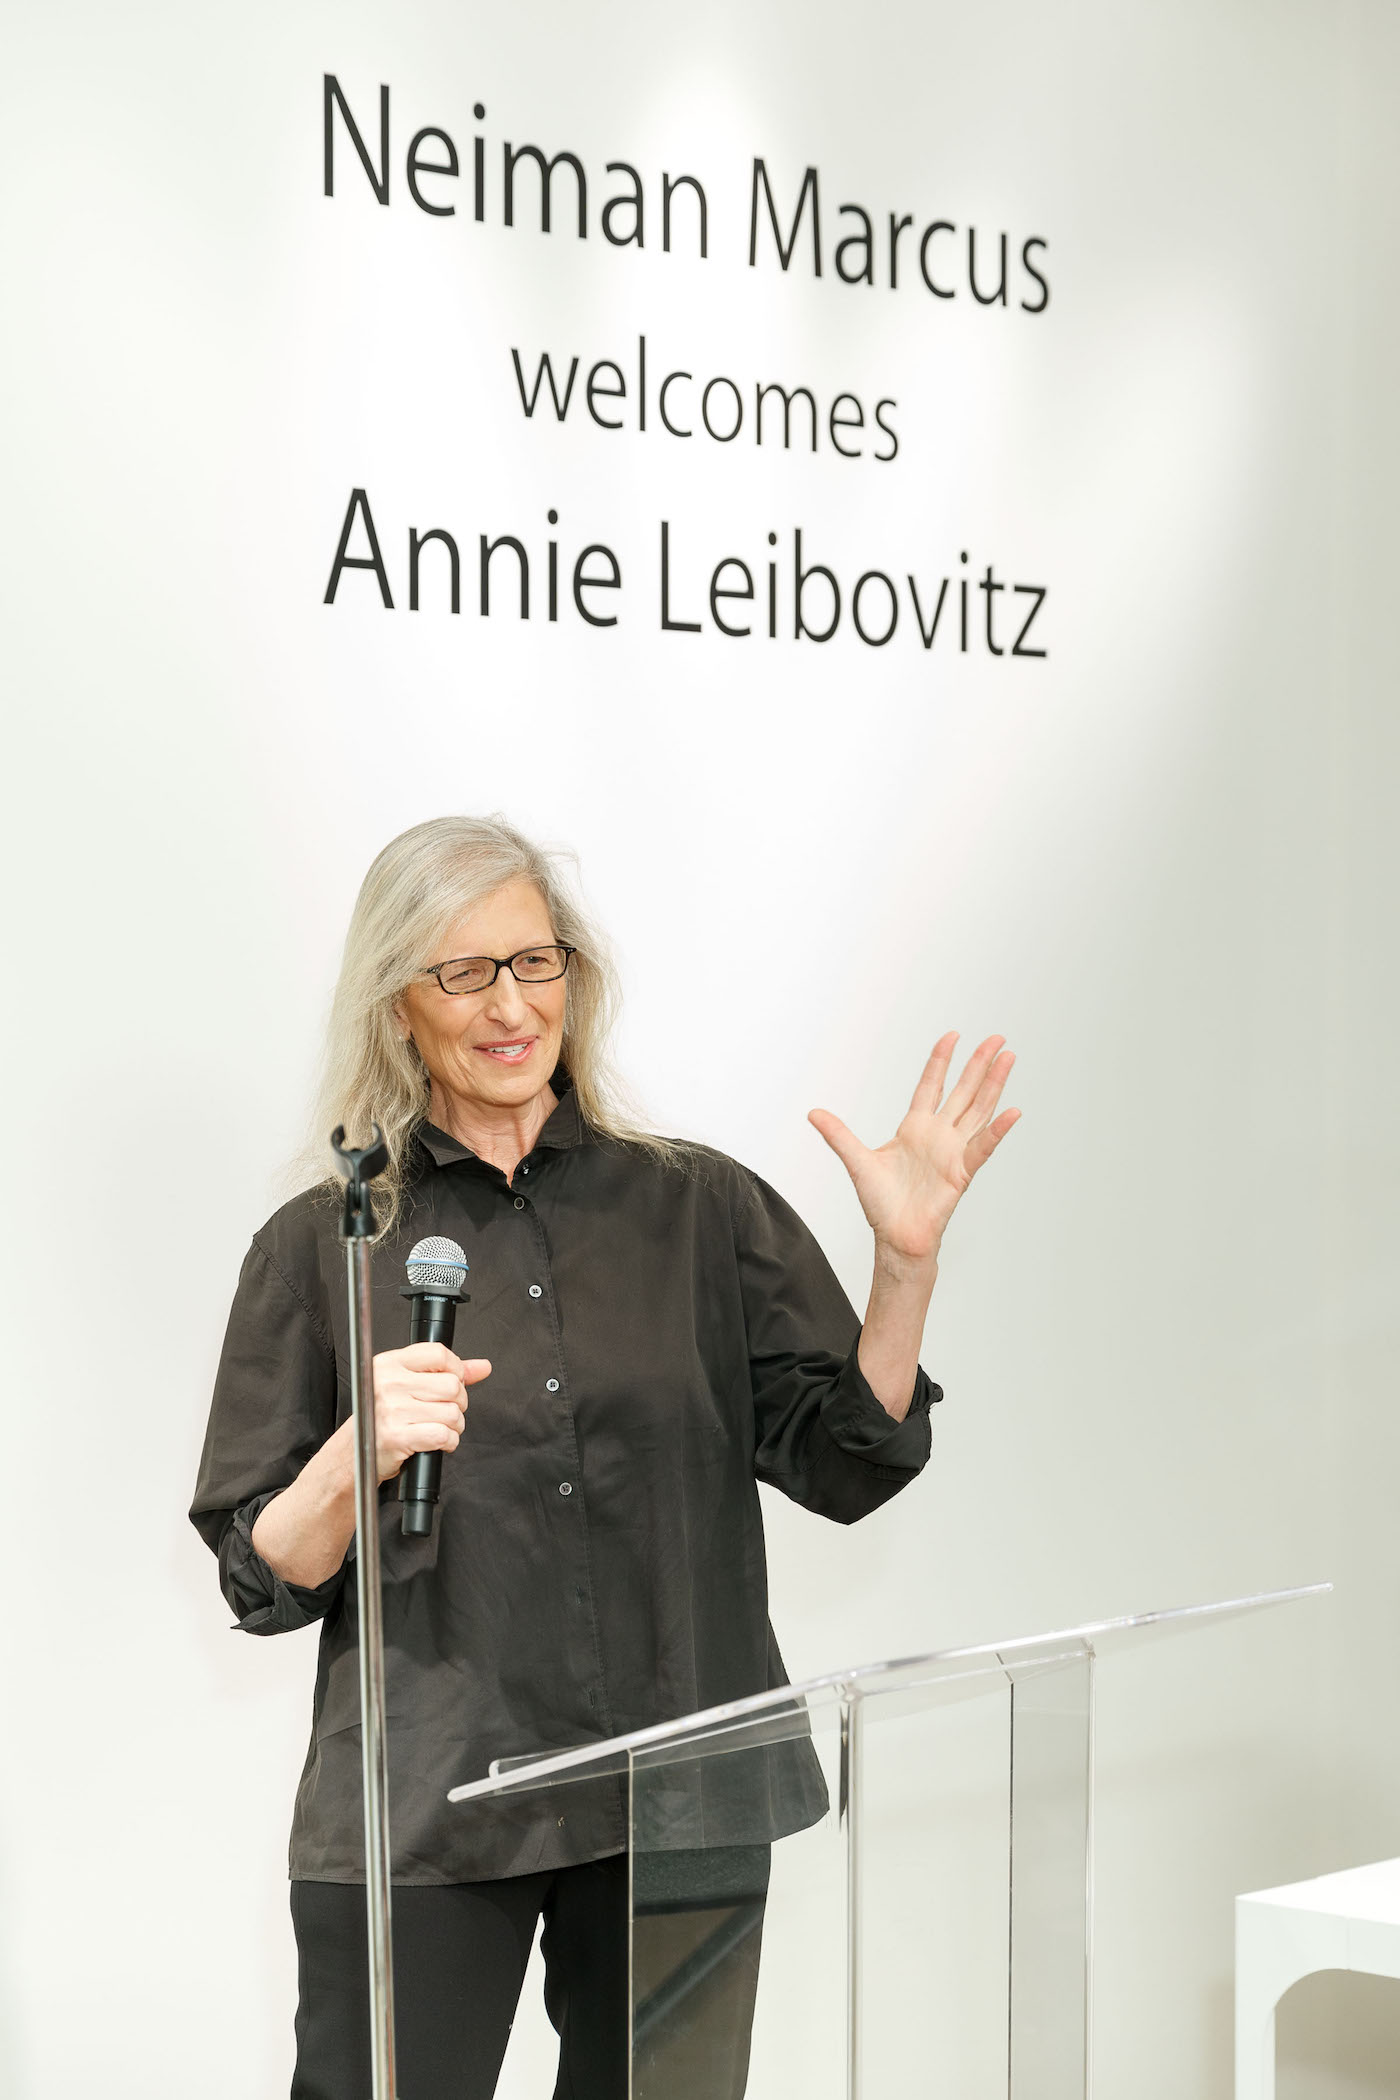 Annie Leibovitz at a book signing at Neiman Marcus in San Francisco